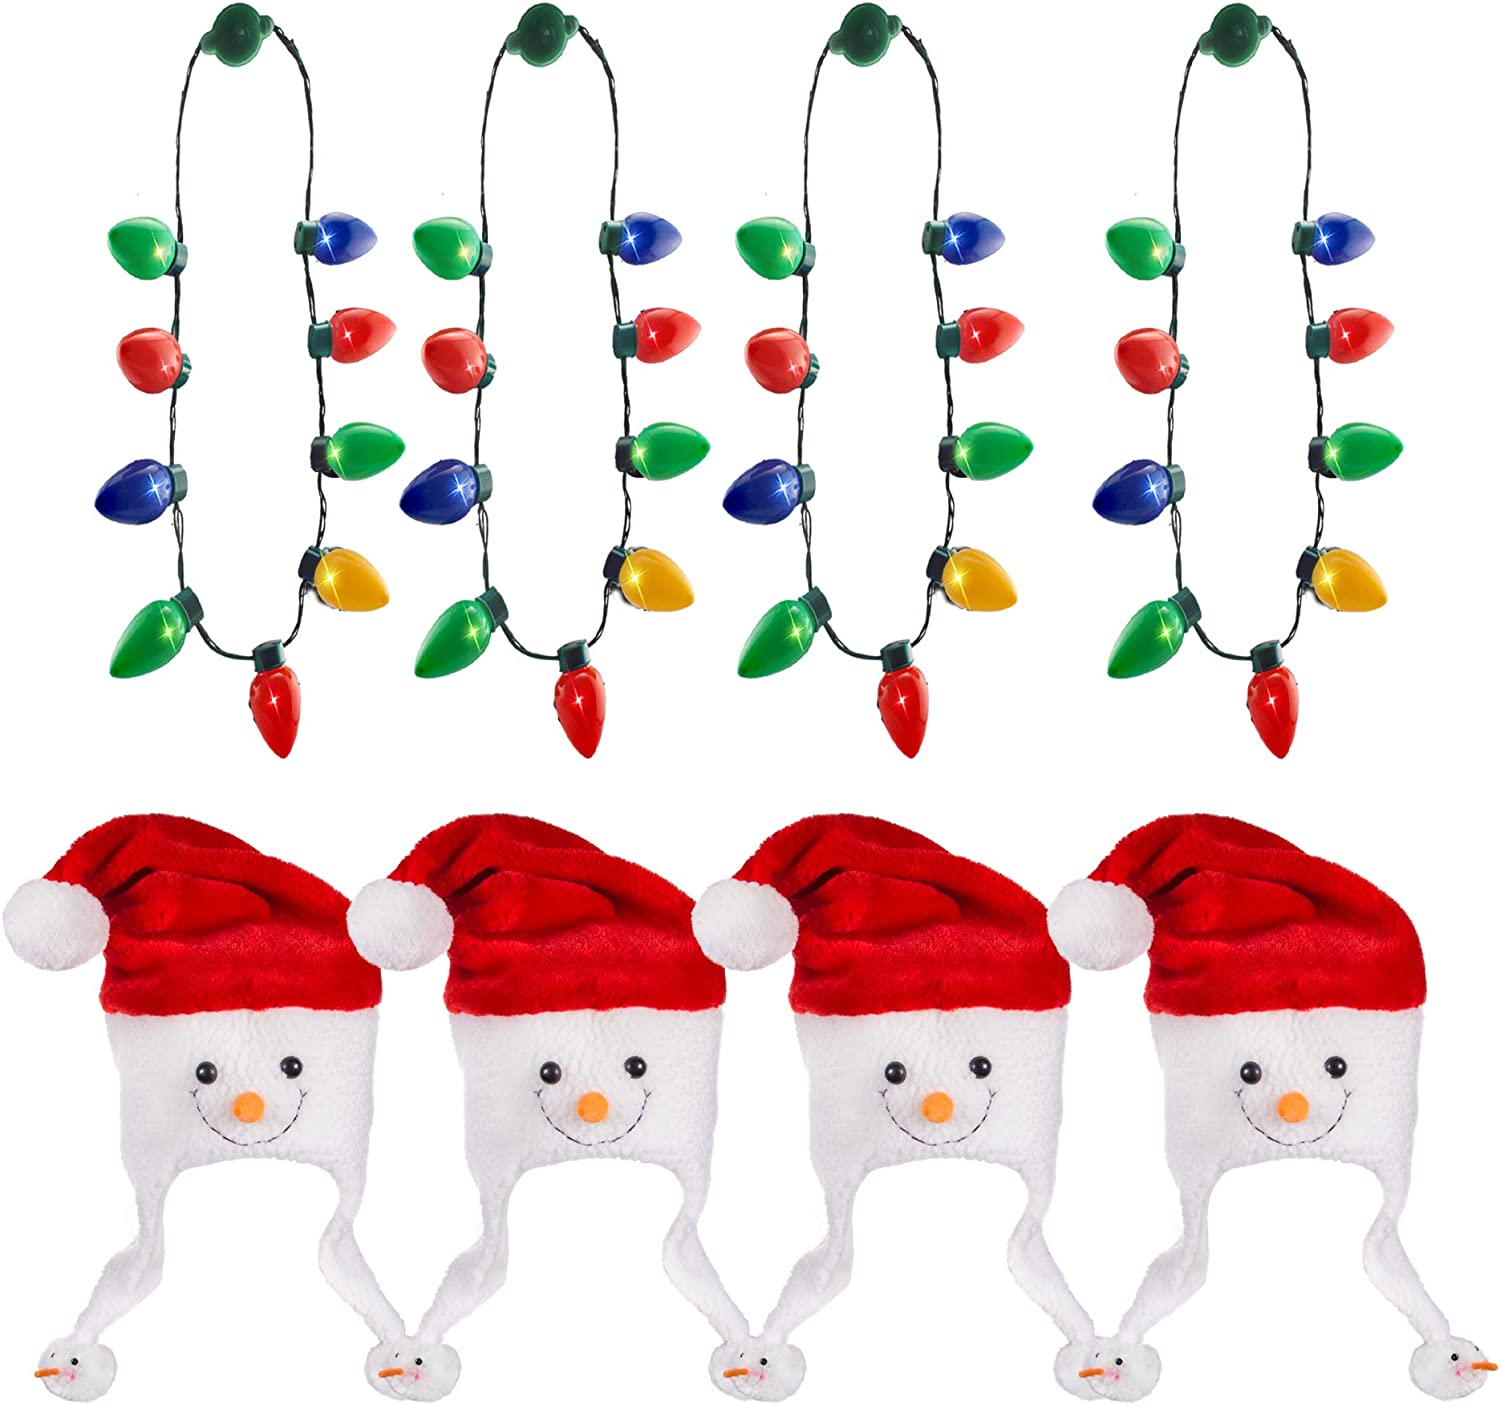 Windy City Novelties Holiday Bundle Kit | 4 Pack LED Christmas Bulb Necklaces & 4 Pack Snowman Holiday Hats for Men Women & Kids